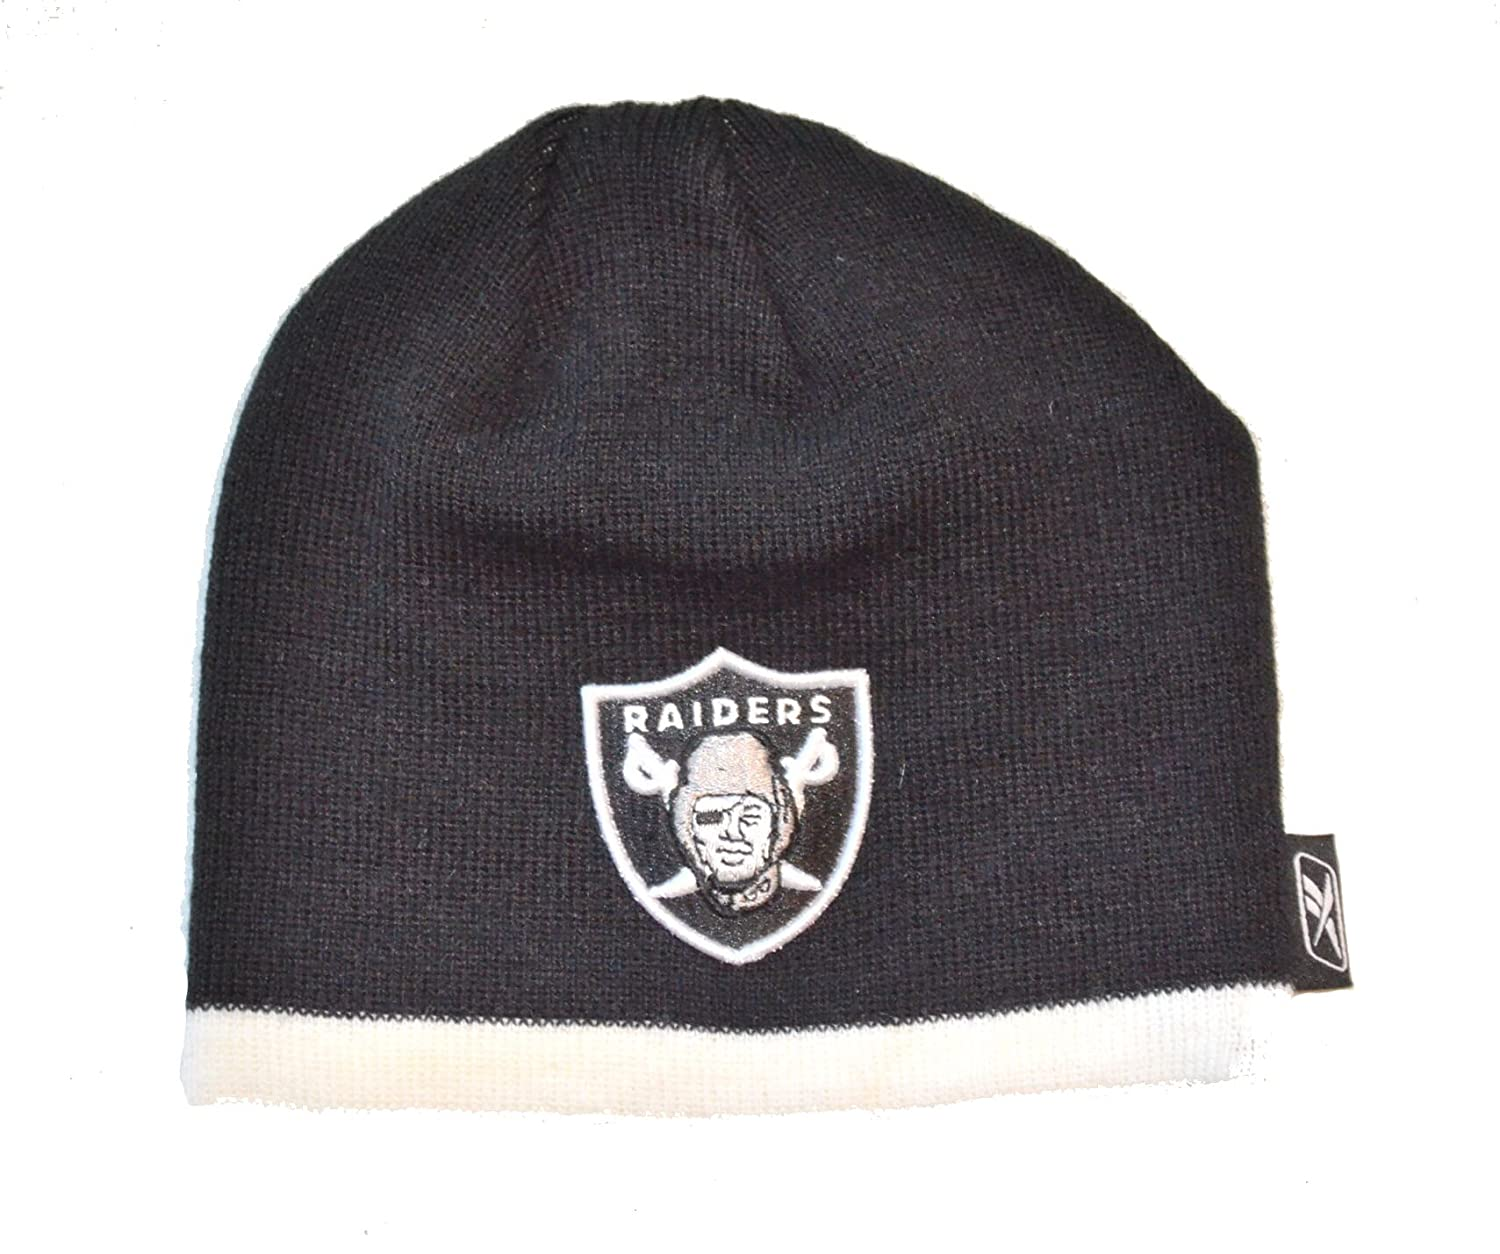 Amazon.com   Oakland Raiders Toddler Striped Beanie Hat - NFL Baby Knit  Gift Cap   Sports   Outdoors 877a7a3a8